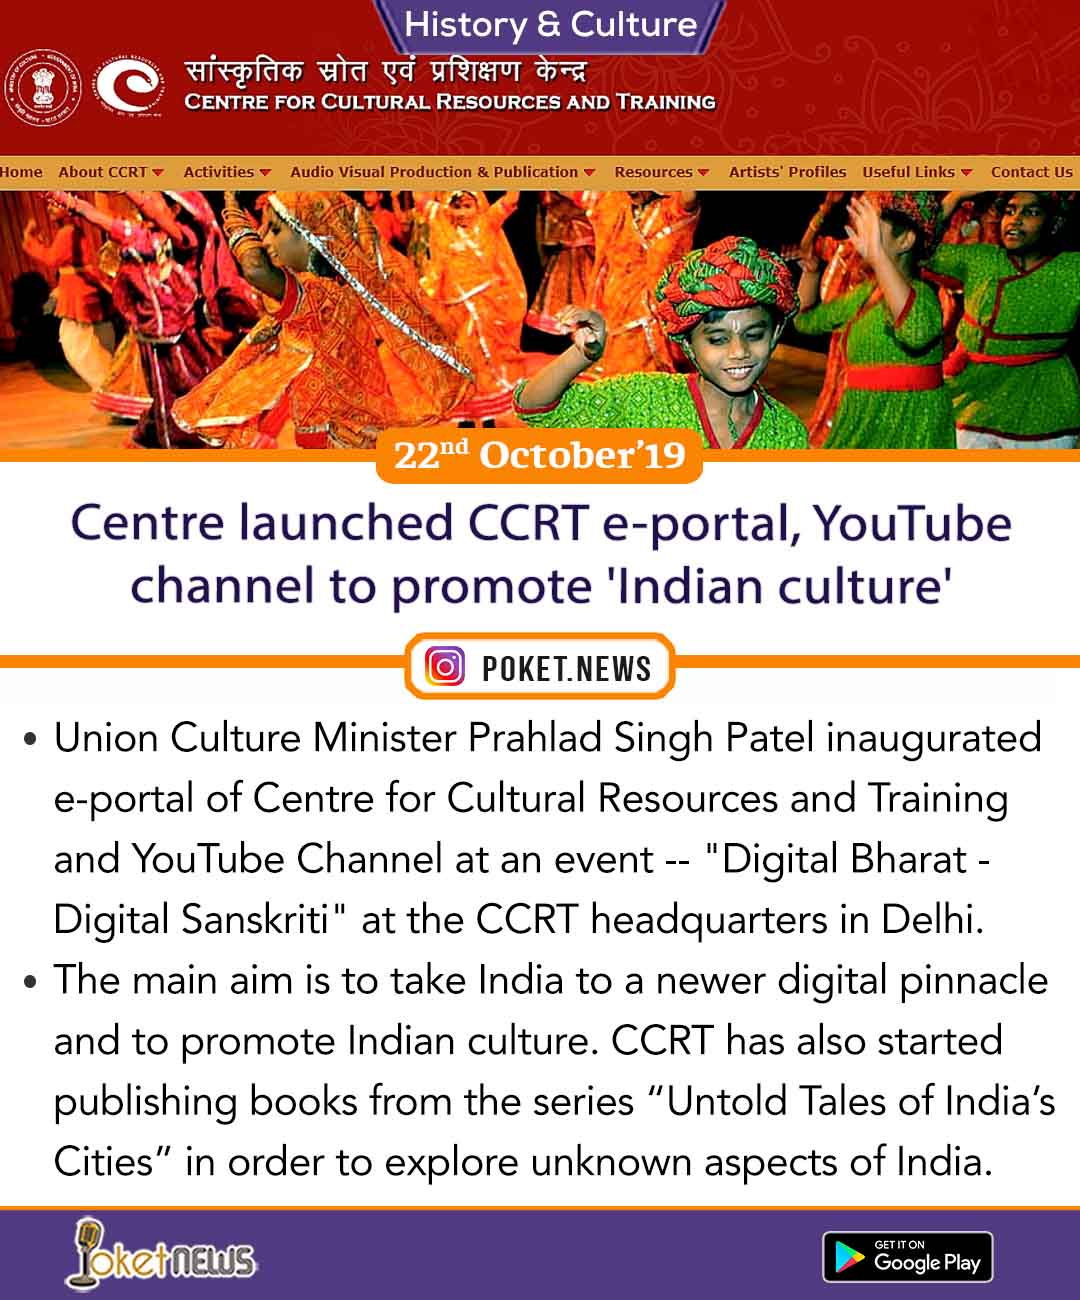 Centre launched CCRT e-portal, YouTube channel to promote 'Indian culture'